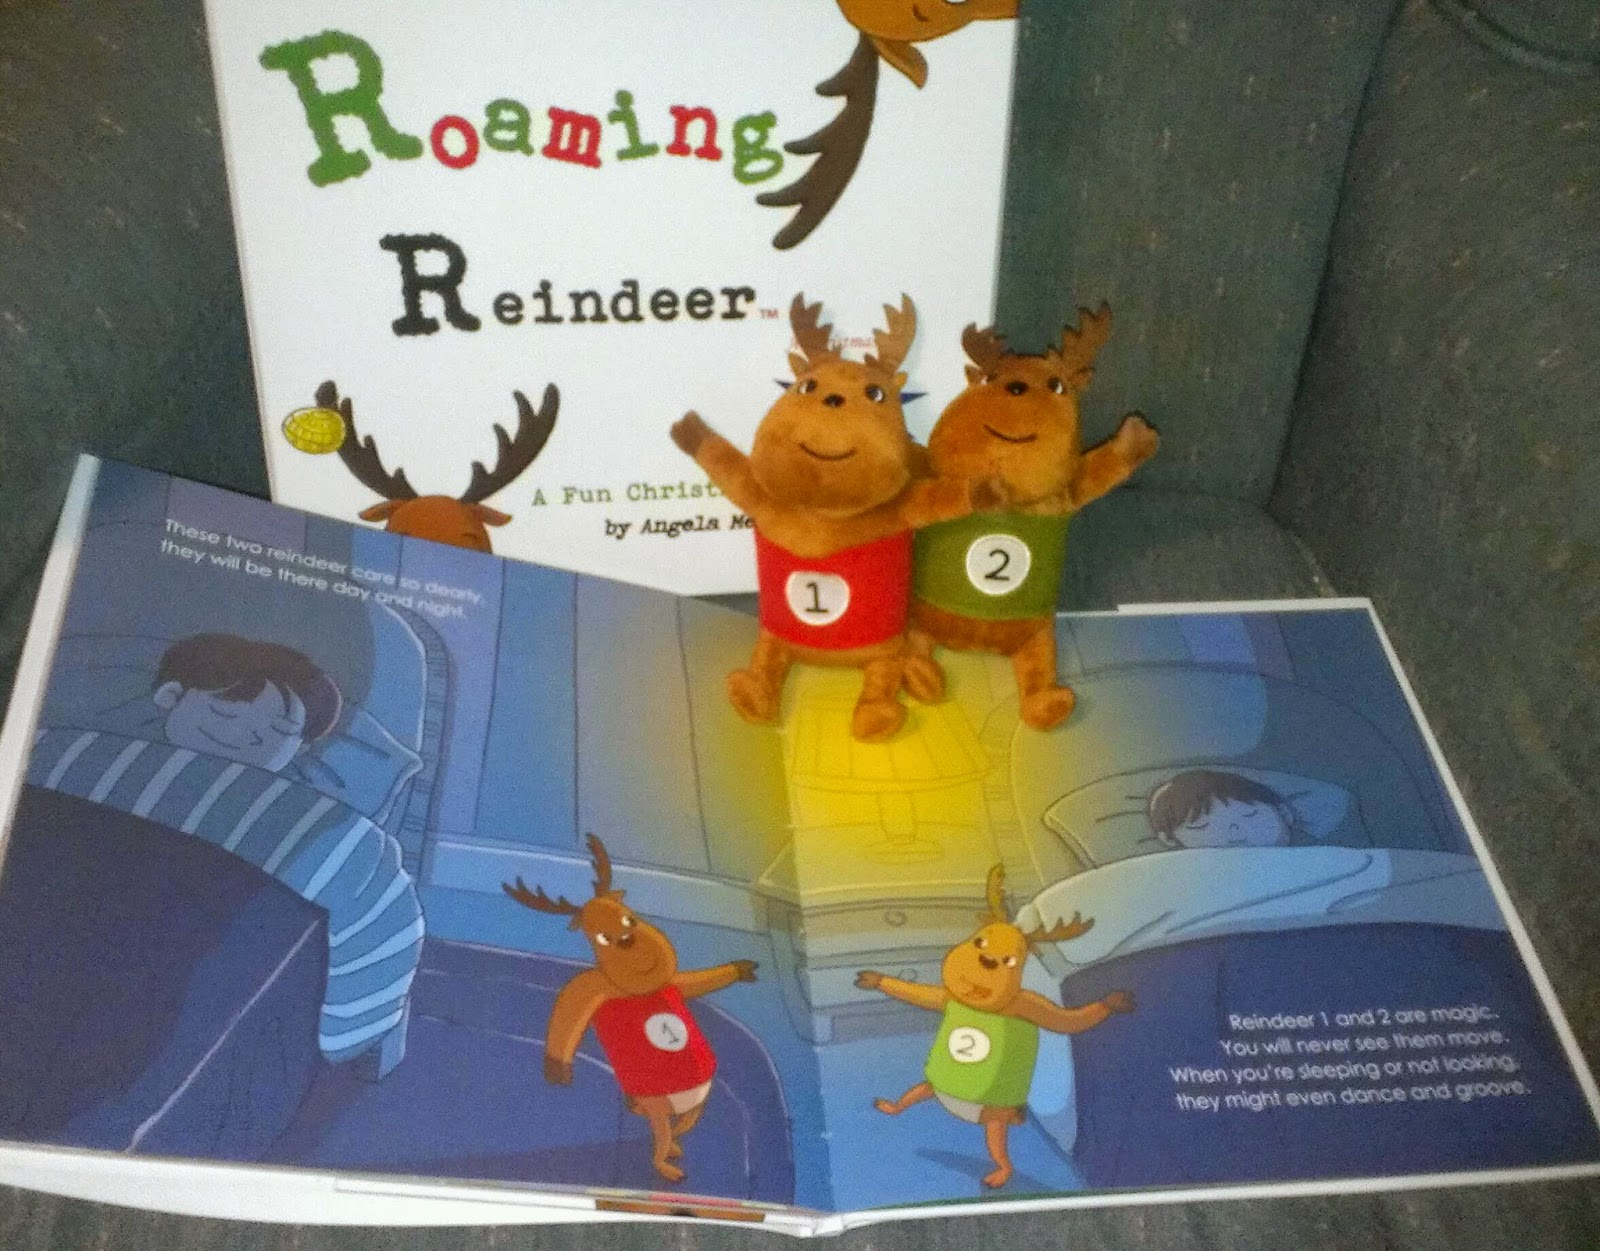 roaming reindeer set 2